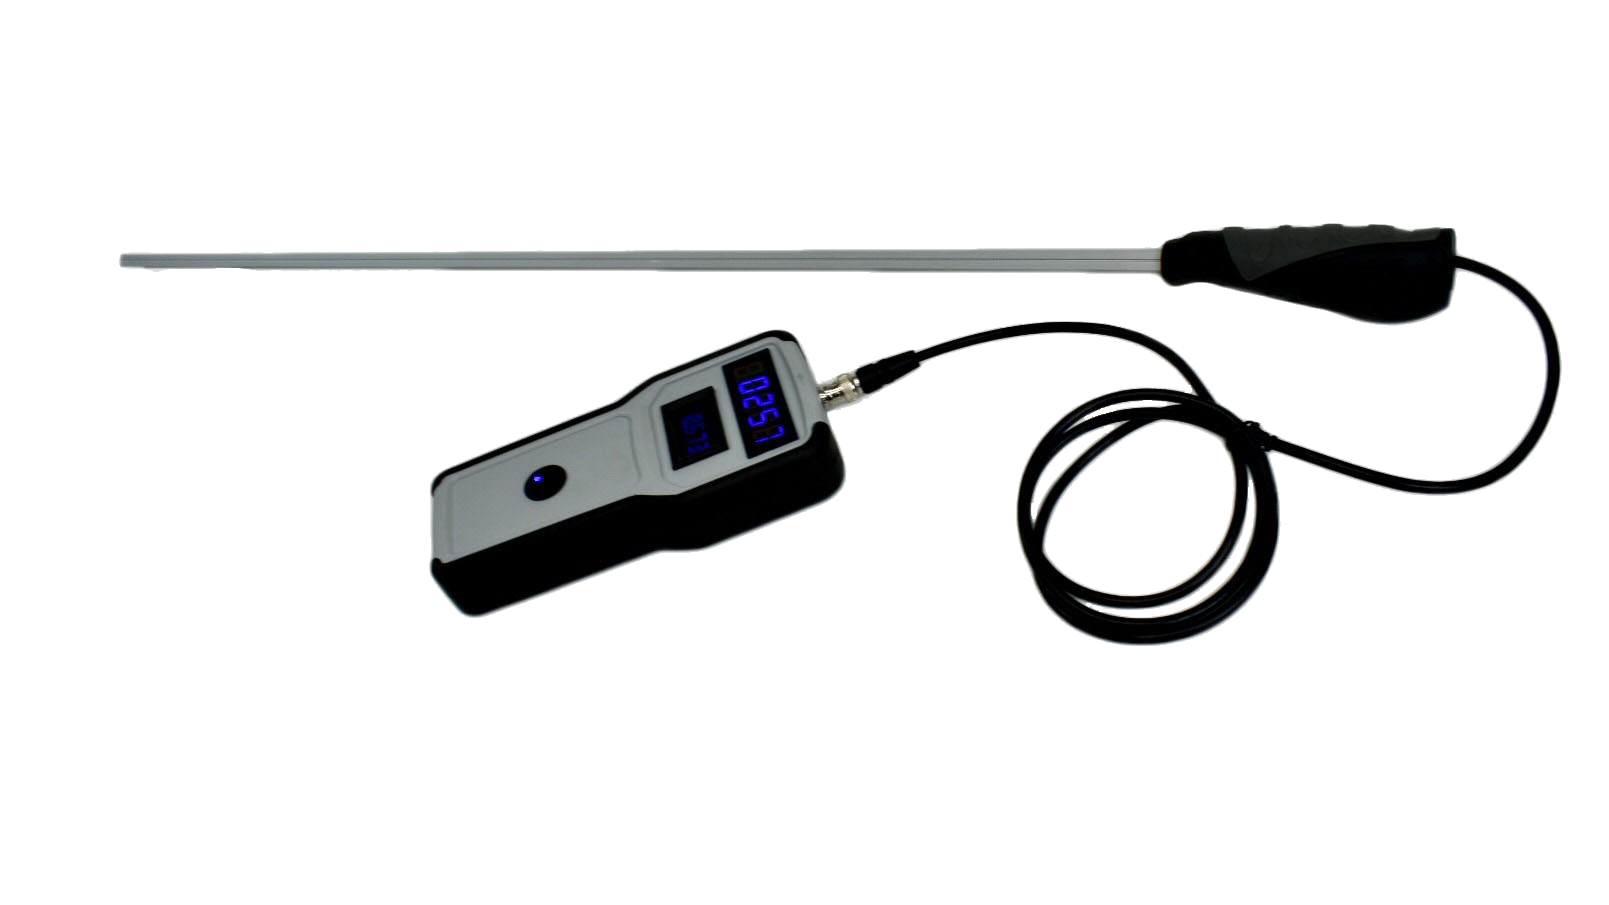 The SSU Meter is a proprietary design made specifically to be used with our systems. It is used to measure the amount of light radiance that is reaching the canopy of your grow space. This allows the user to adjust the lights and plants for maximum results.